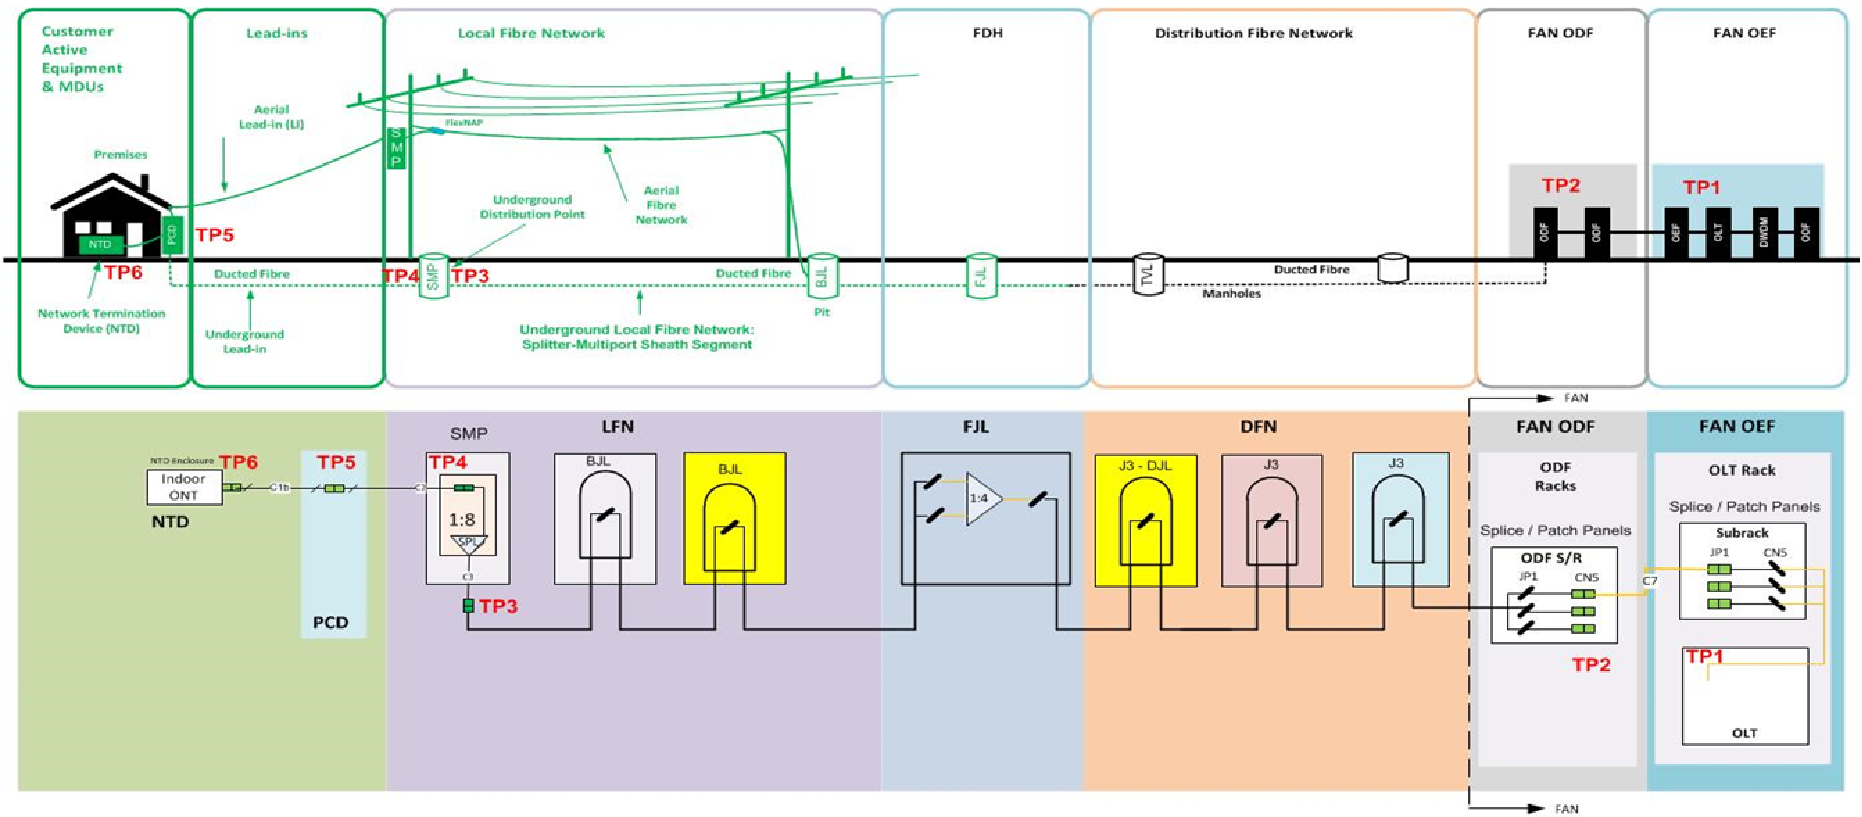 FTTC (Fibre-to-the-Curb) Test Methods & Topology